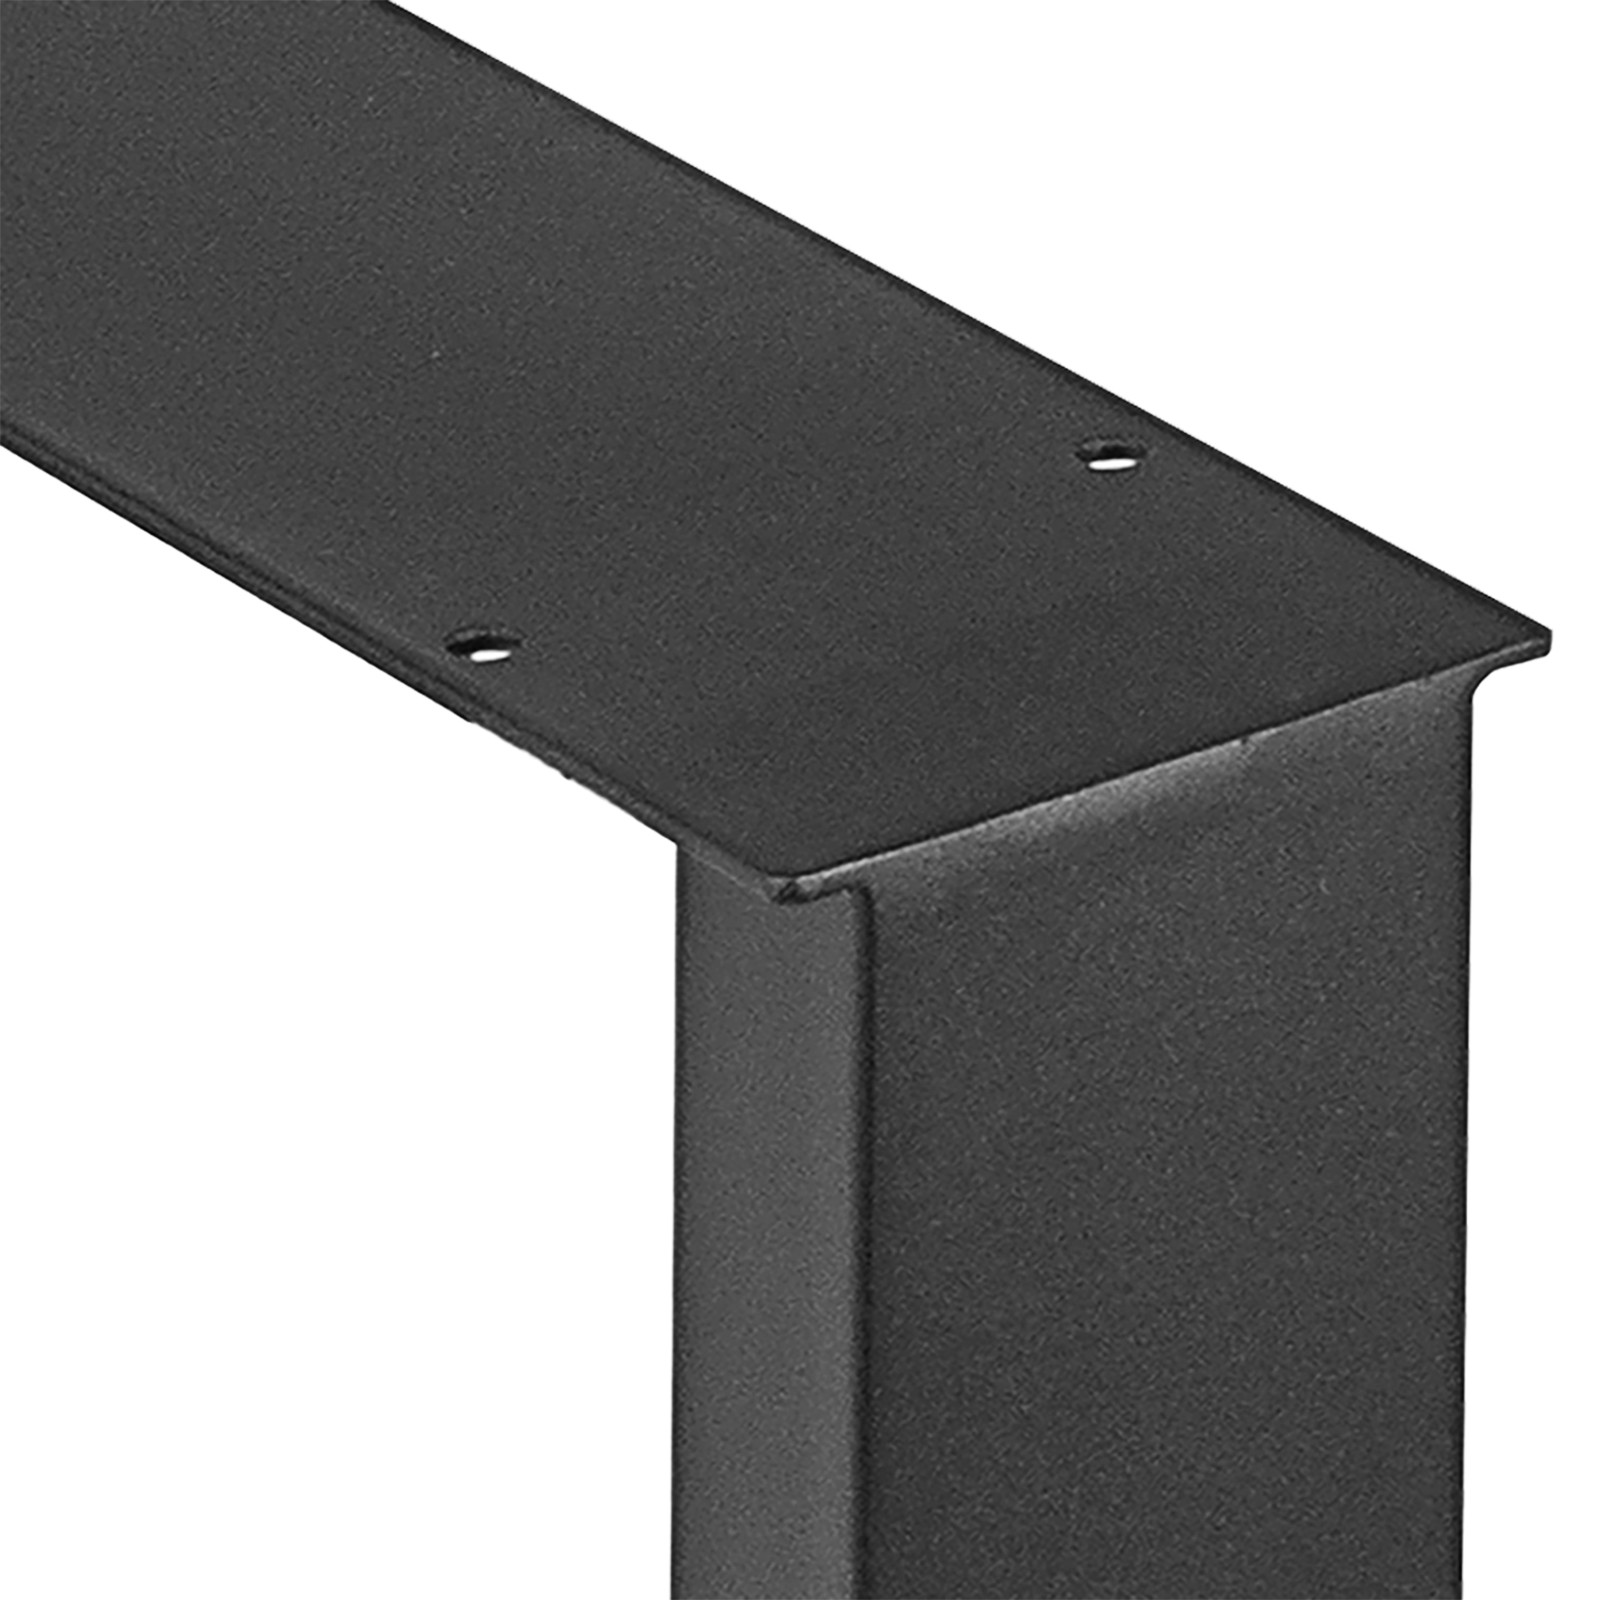 2X-Table-Legs-Black-Dining-Table-Leg-Heavy-Duty-Computer-Desk-Legs-Rectangle thumbnail 91